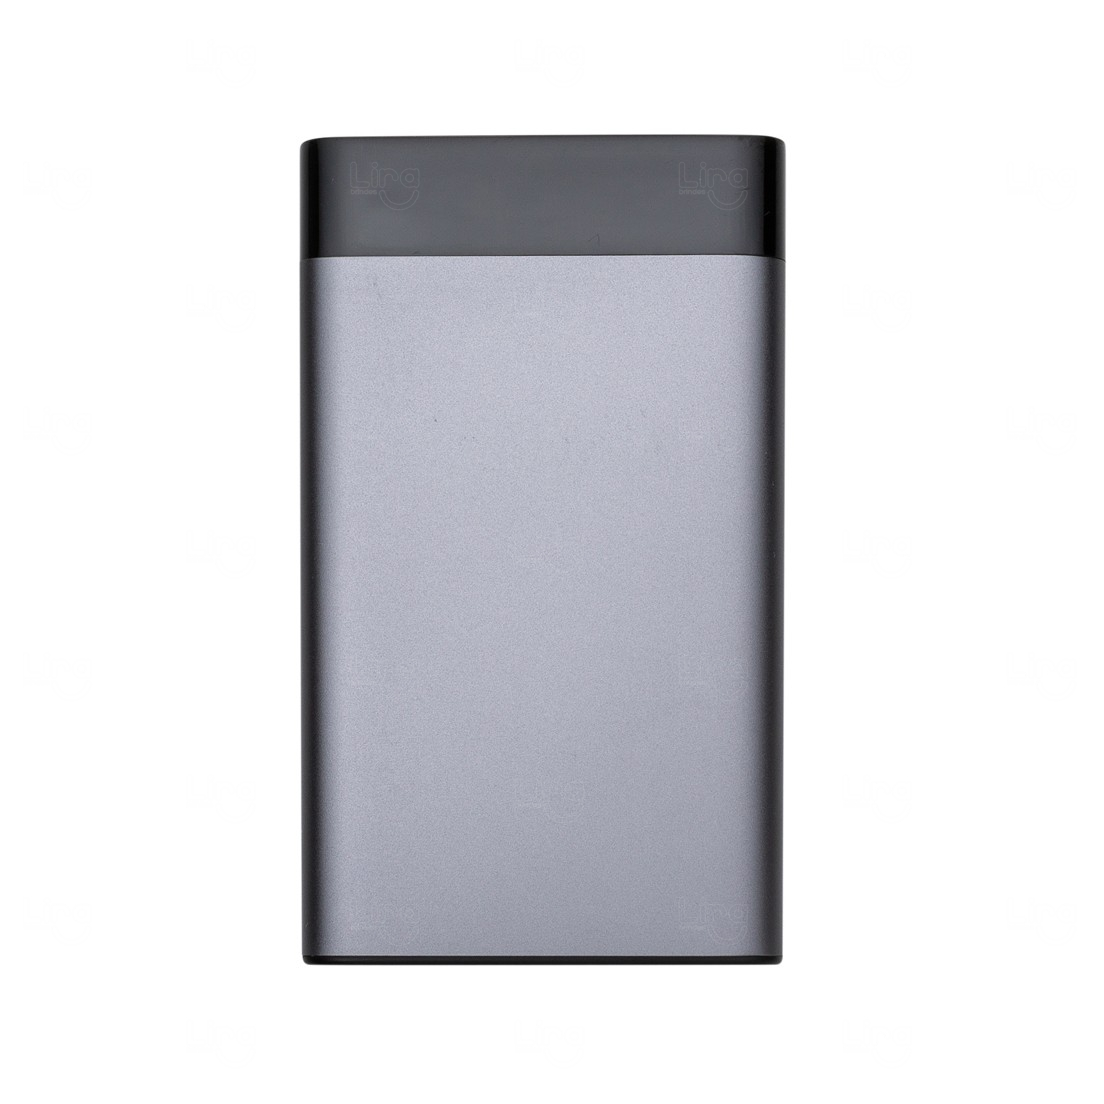 Bateria Power Bank Personalizado Visor Digital - 6.000 mAh